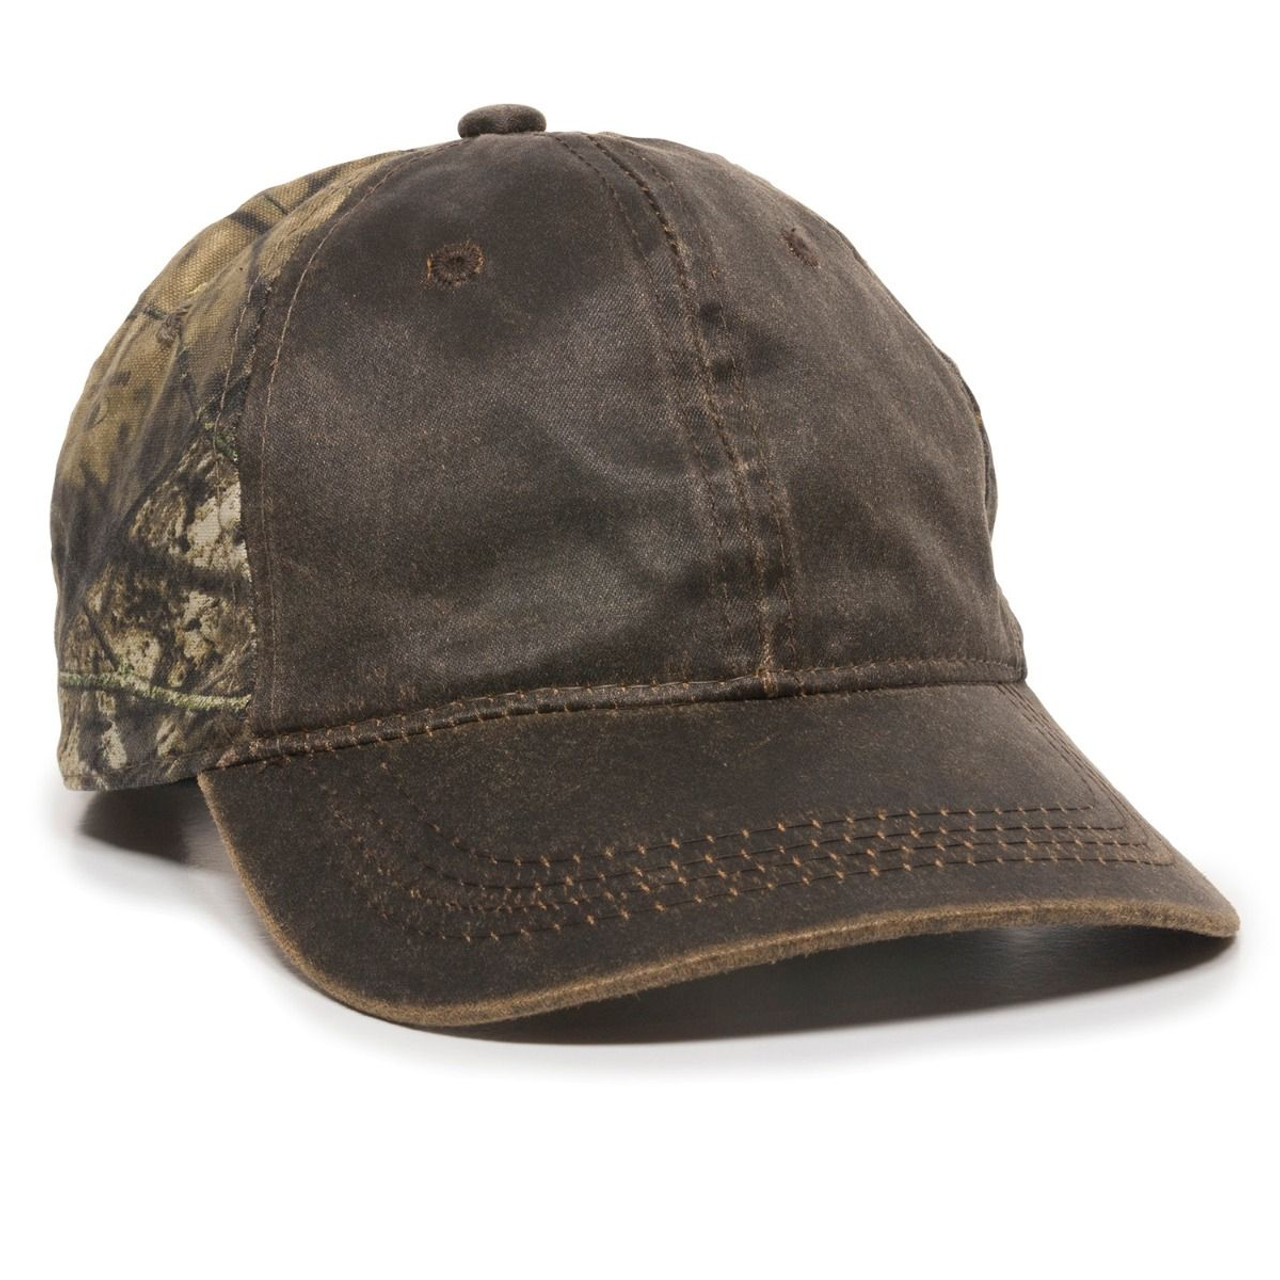 Promotional Weathered Cotton Twill Camo Hat